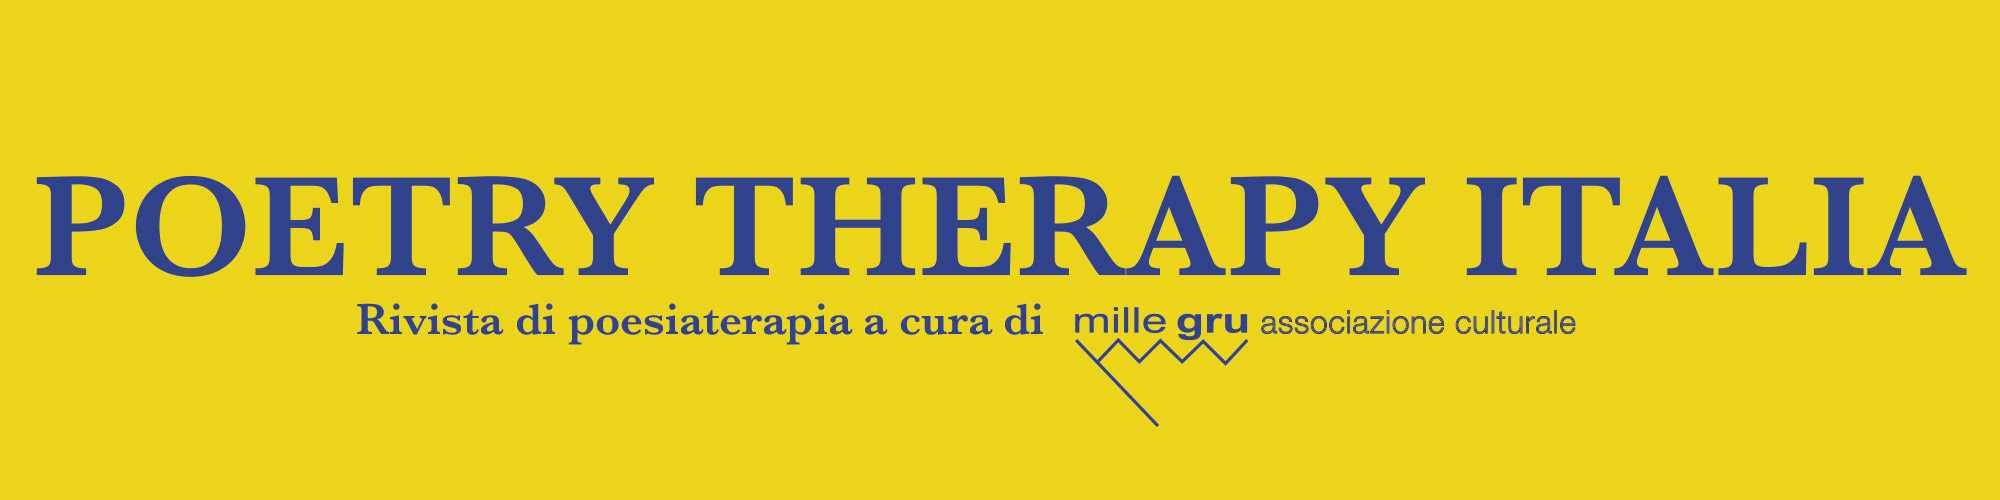 Poetry Therapy Italia header